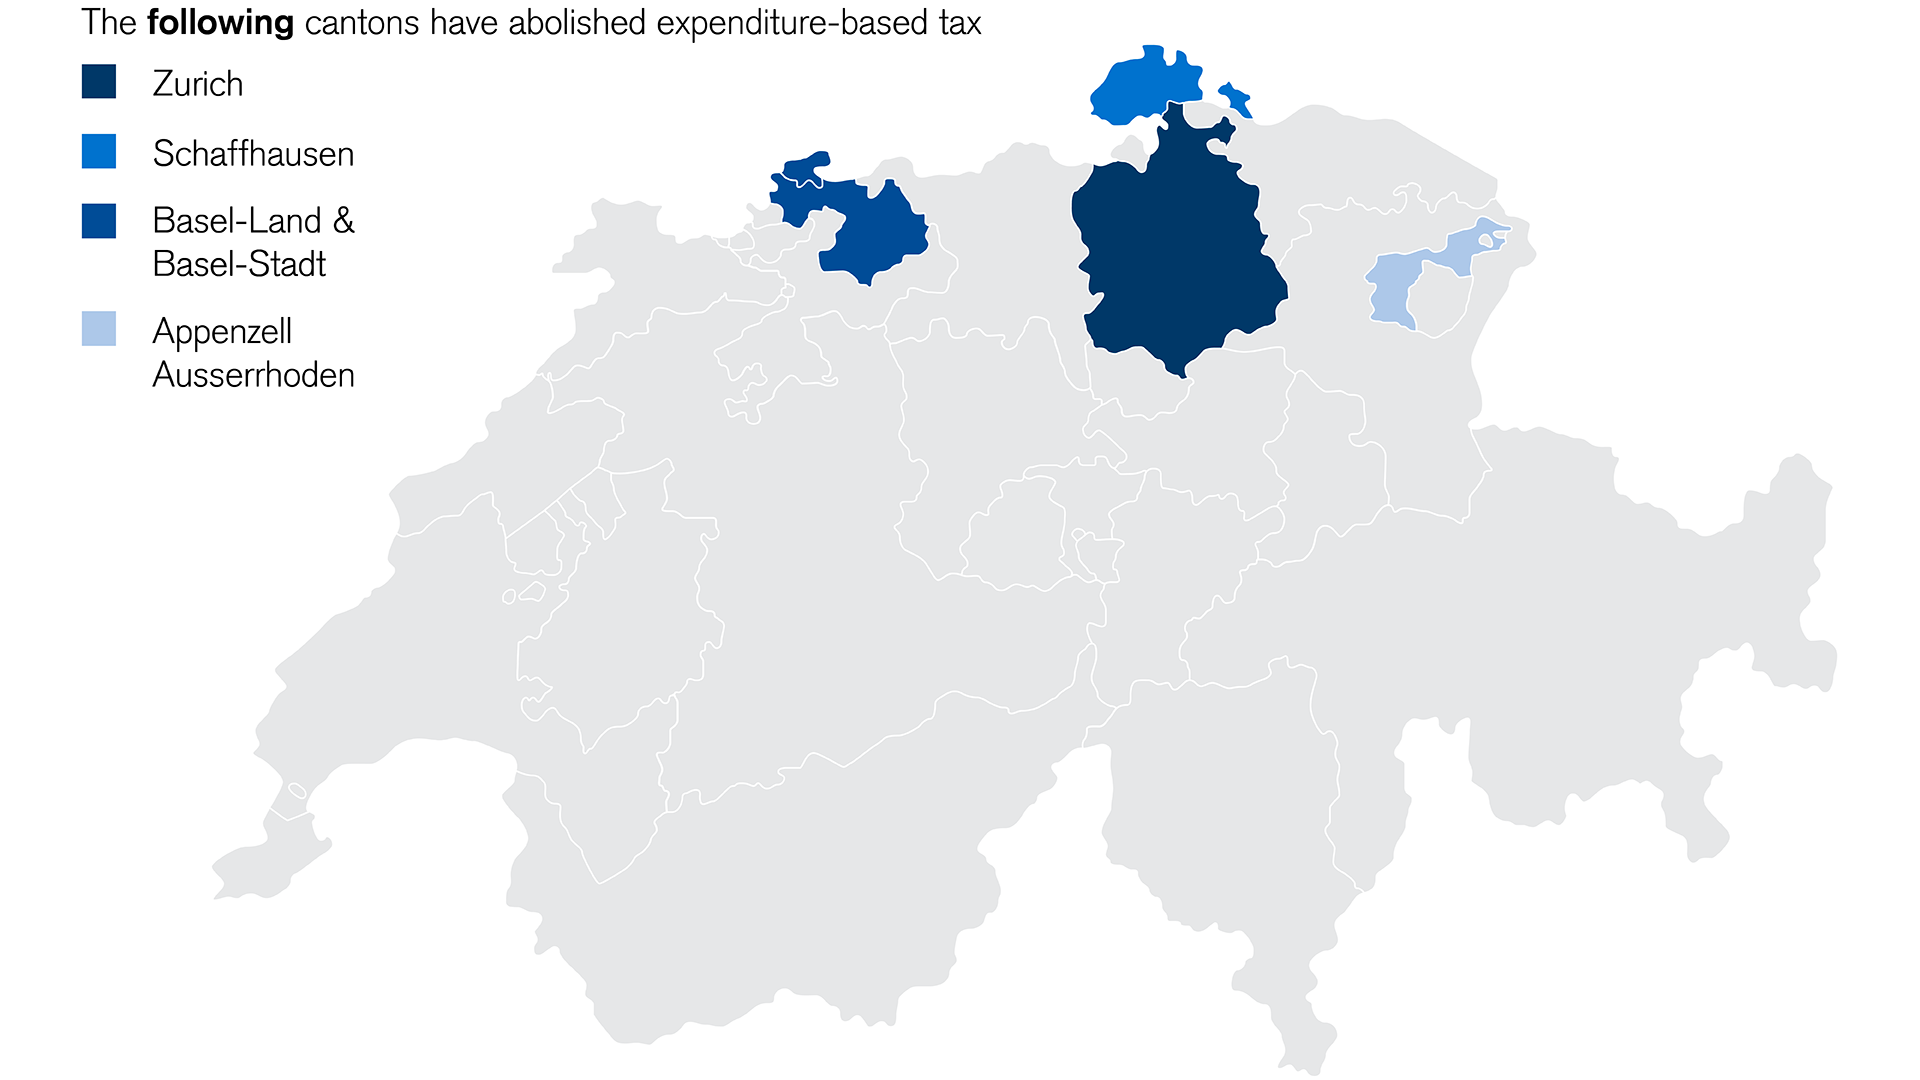 Elimination of expenditure-based taxation by canton